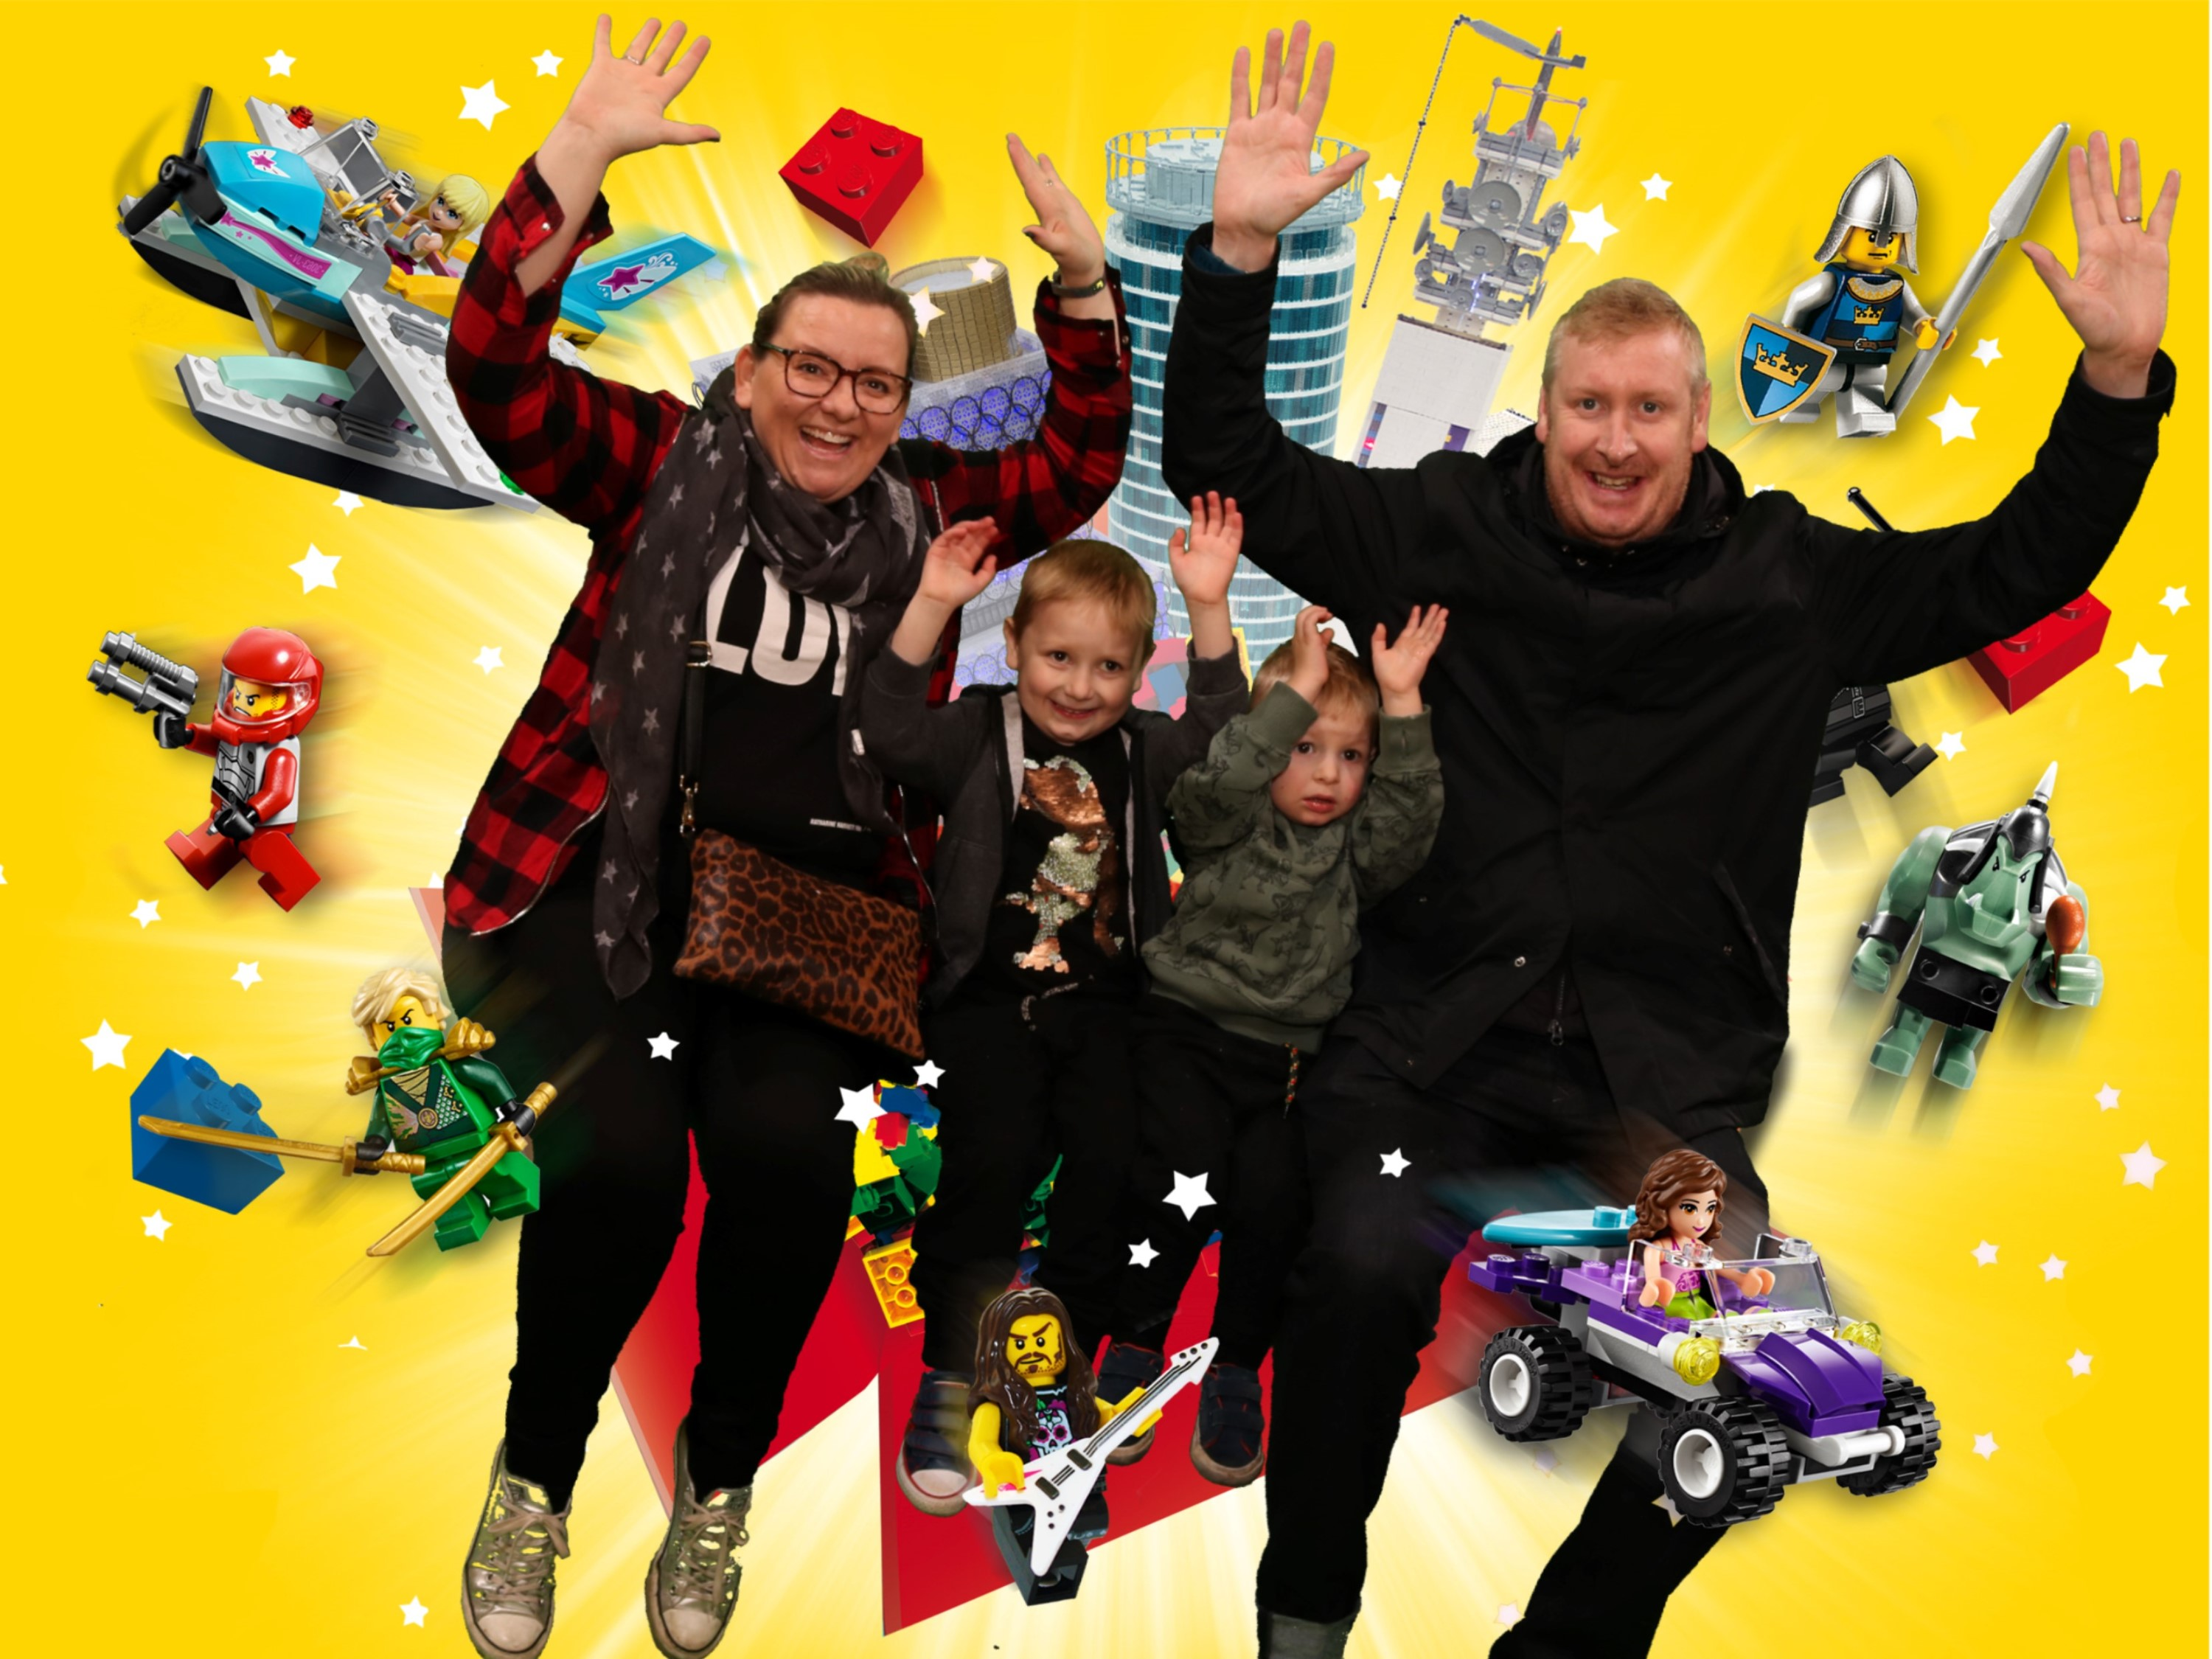 godberstravel, #Donate4Bilbo, Bilbo, childhoodcancer, cancer, leukemia, CLICSargent, giveblood, gofundme, bilbosjourney, our new normal, legoland discovery centre birmingham